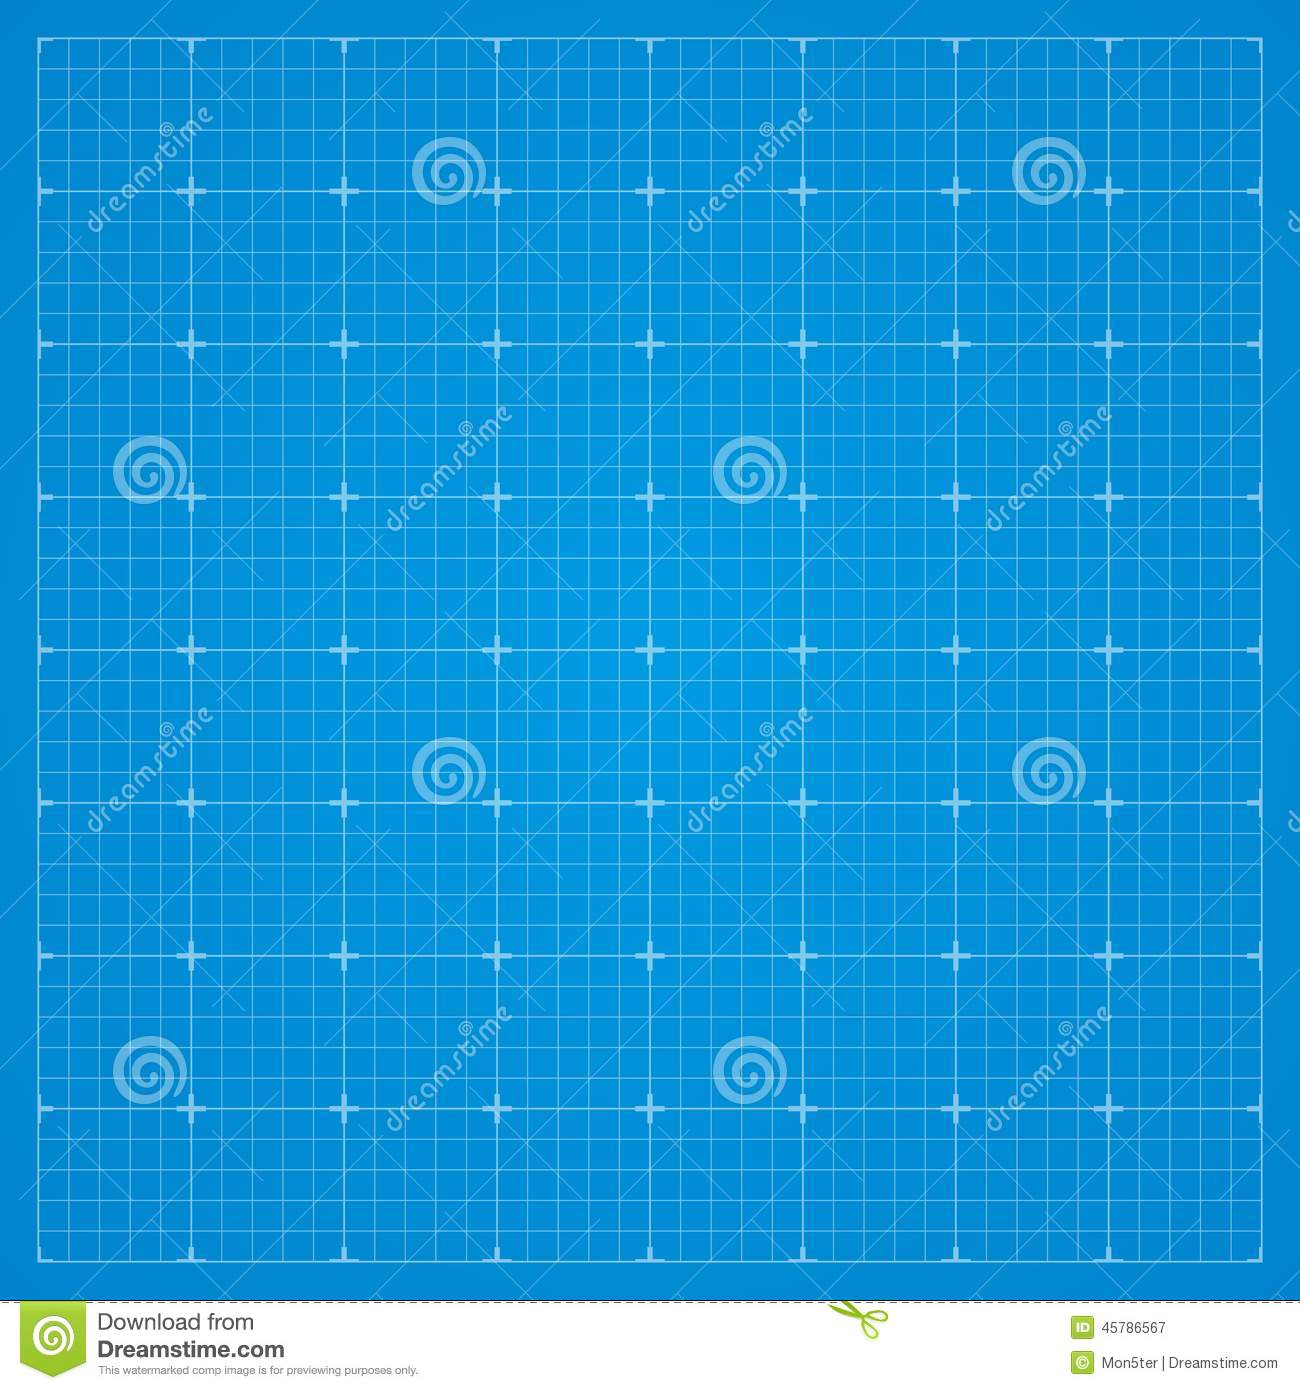 Download Clean Blueprint Background. Stock Vector   Illustration Of  Education, Blank: 45786567